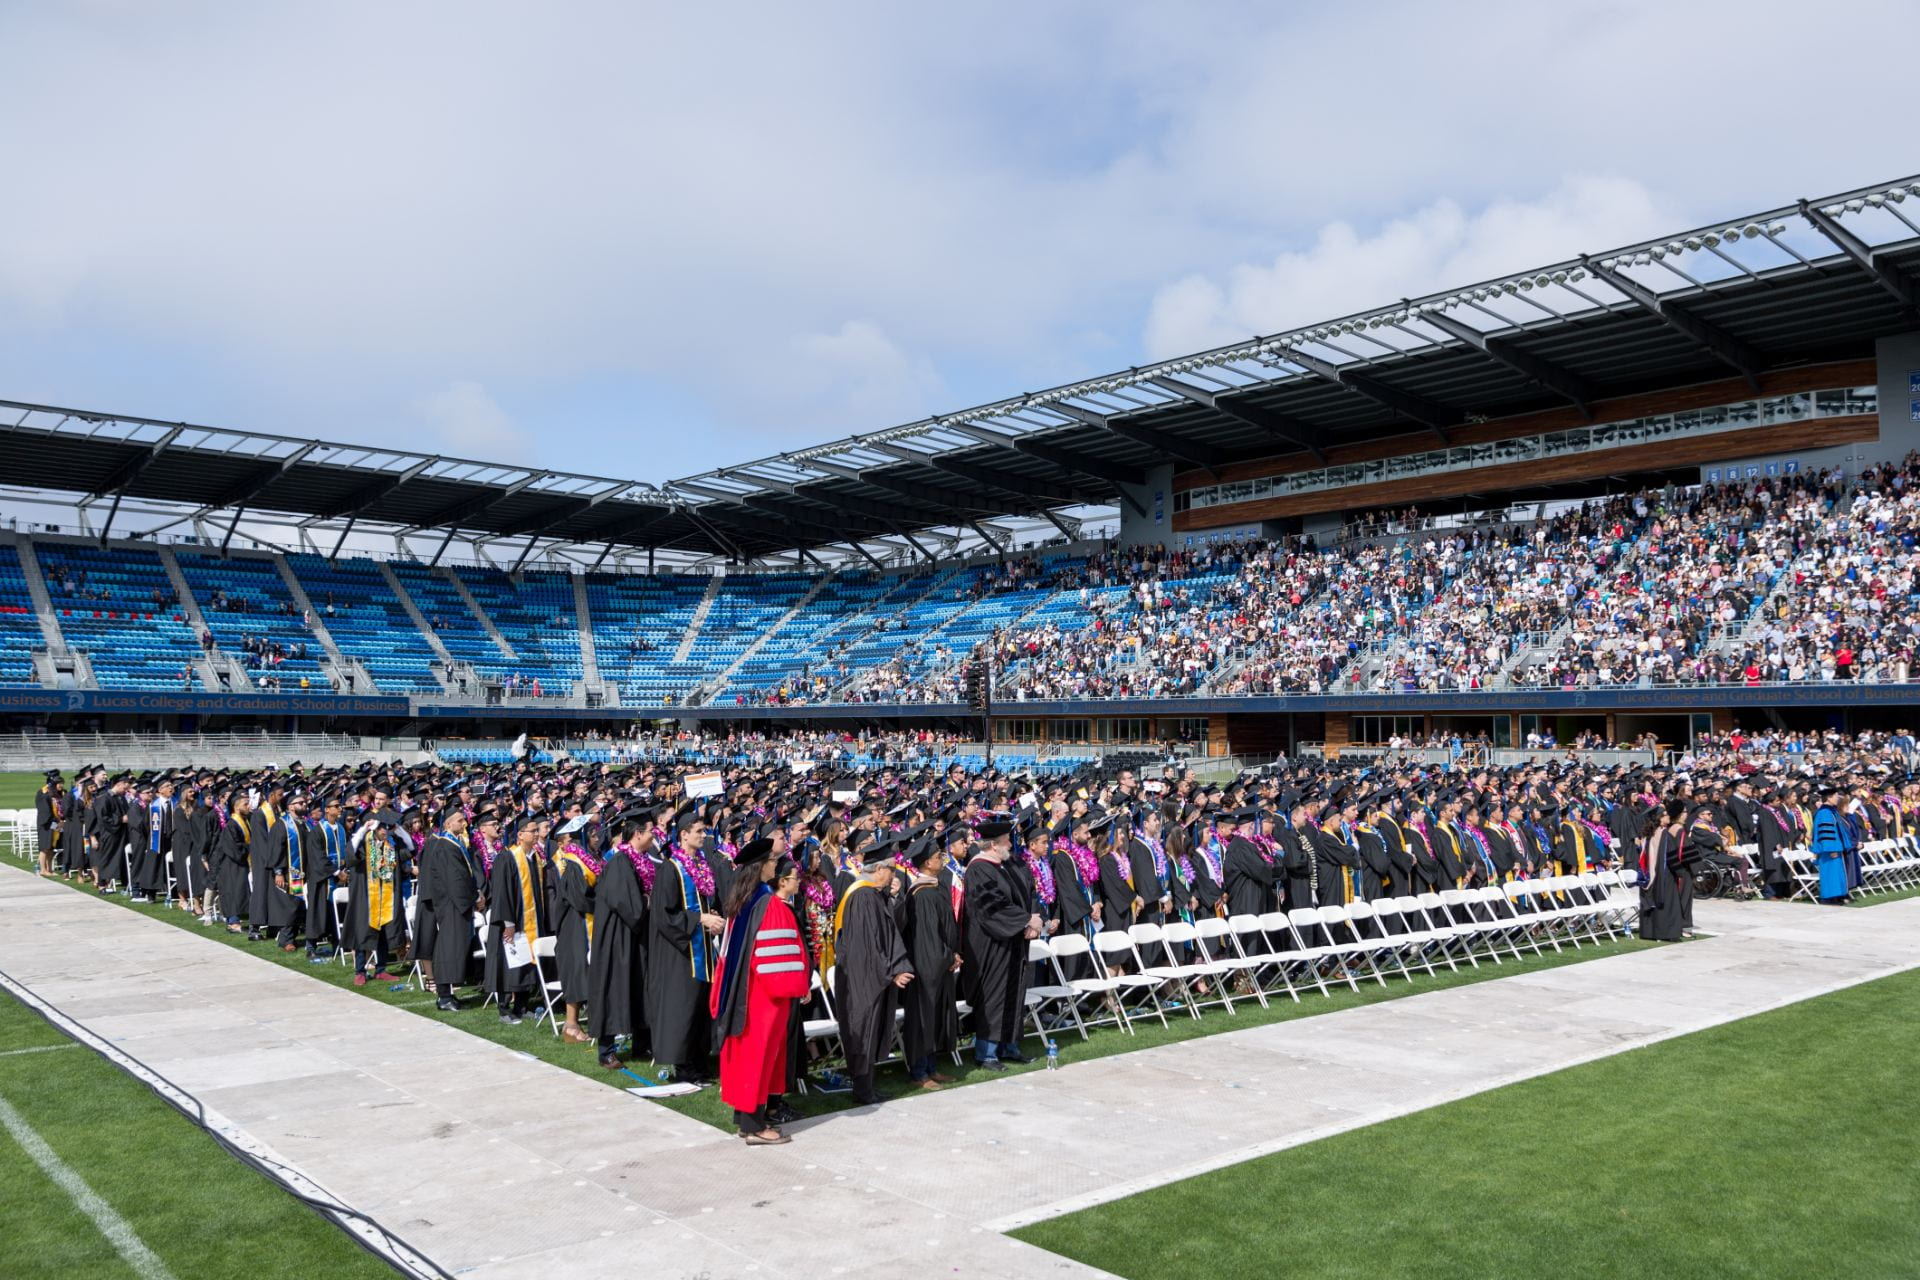 Graduates of the class of 2018 file into Avaya Stadium for commencement. Photo by David Schmitz